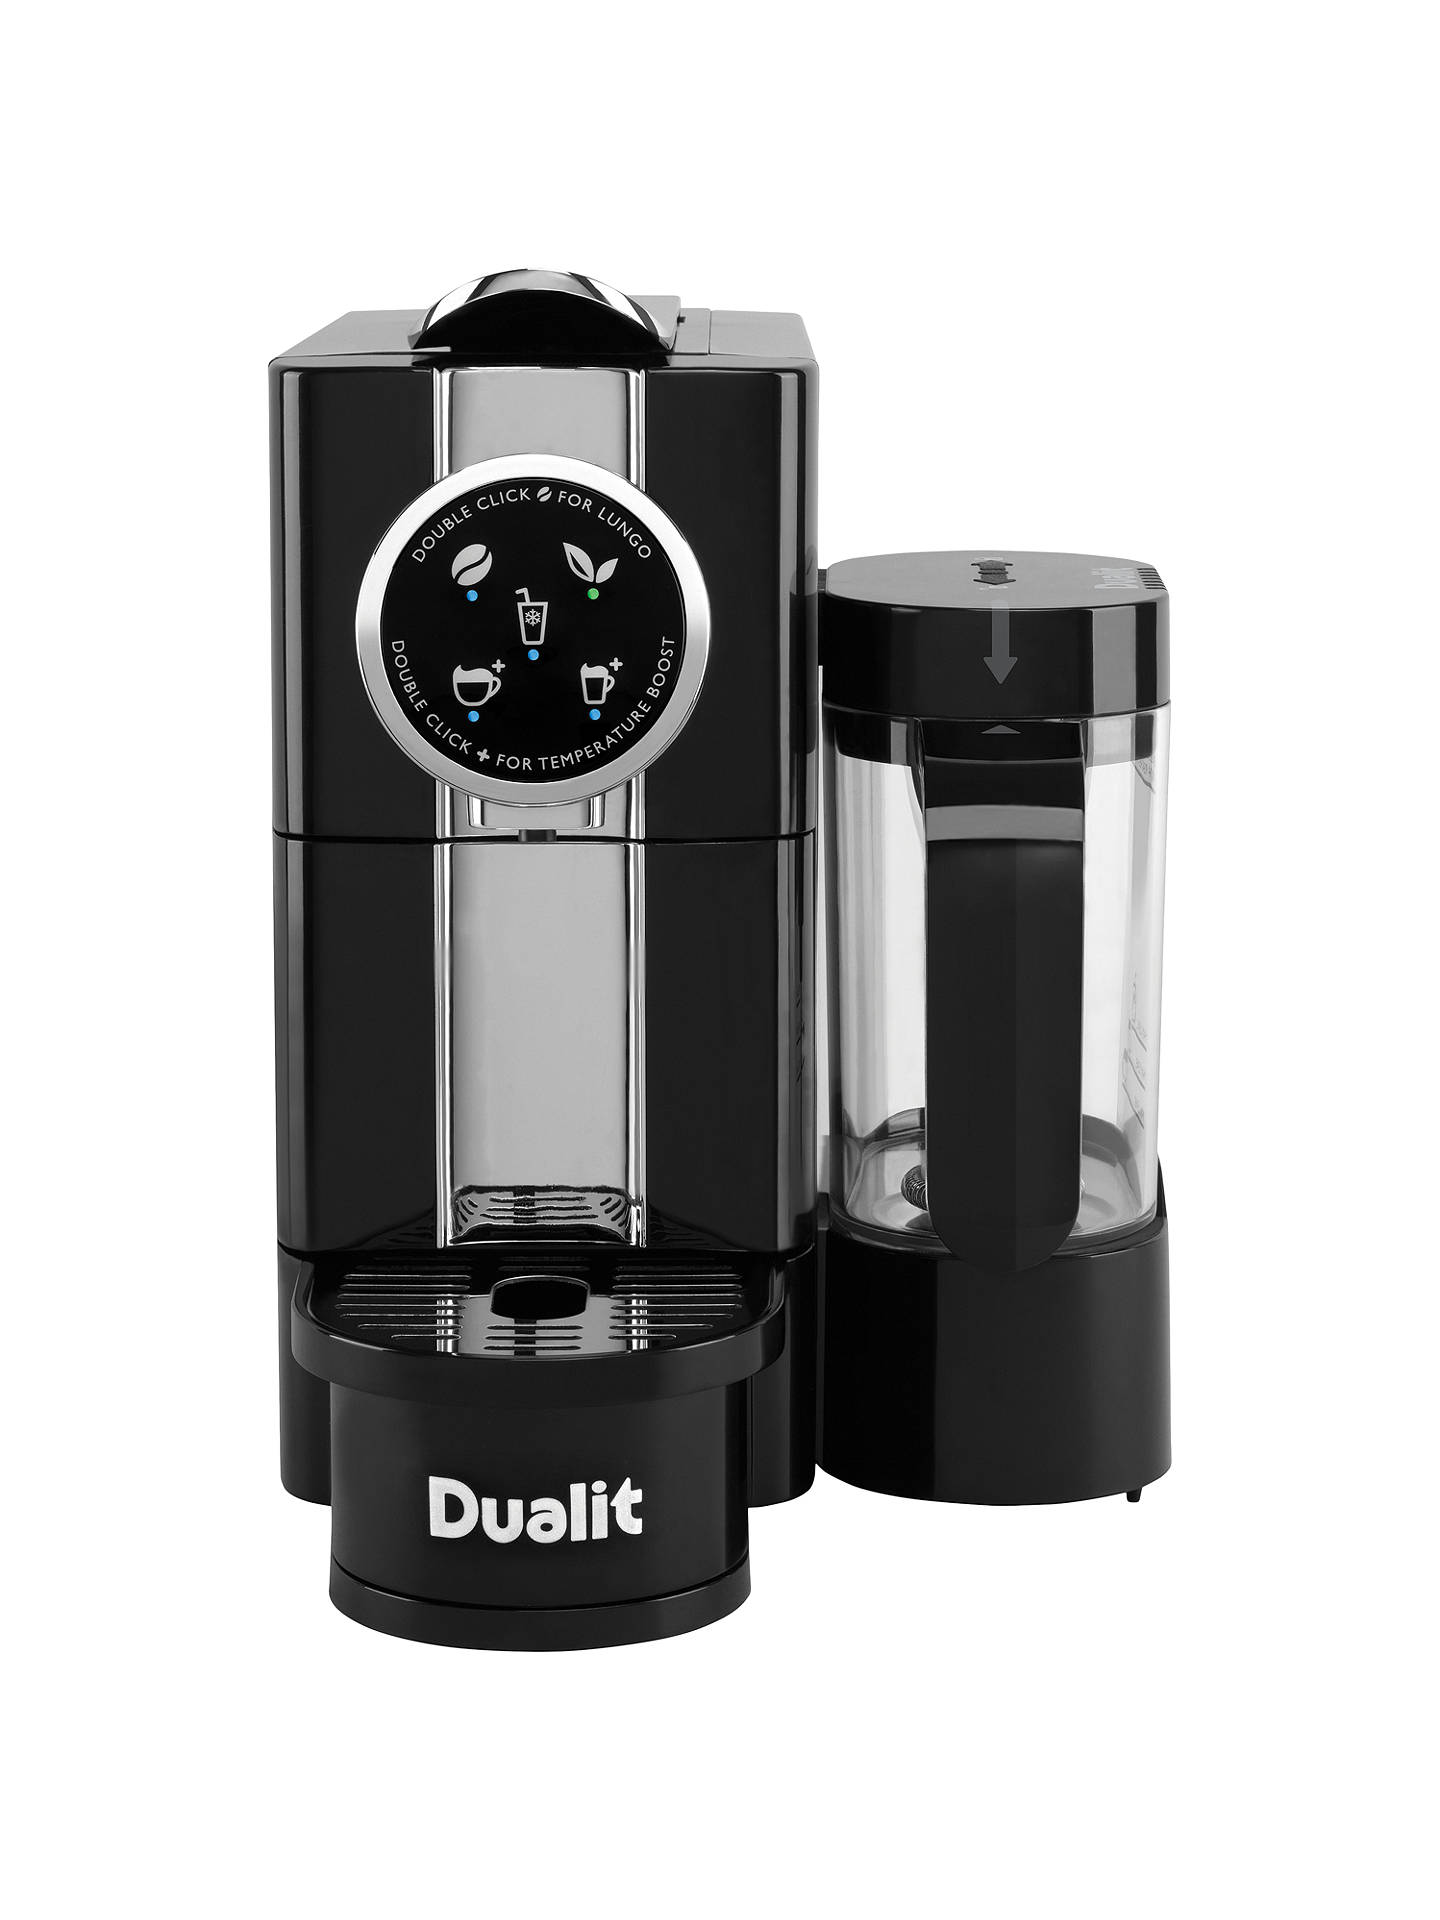 dualit 85180 cafe cino coffee capsule machine black at. Black Bedroom Furniture Sets. Home Design Ideas